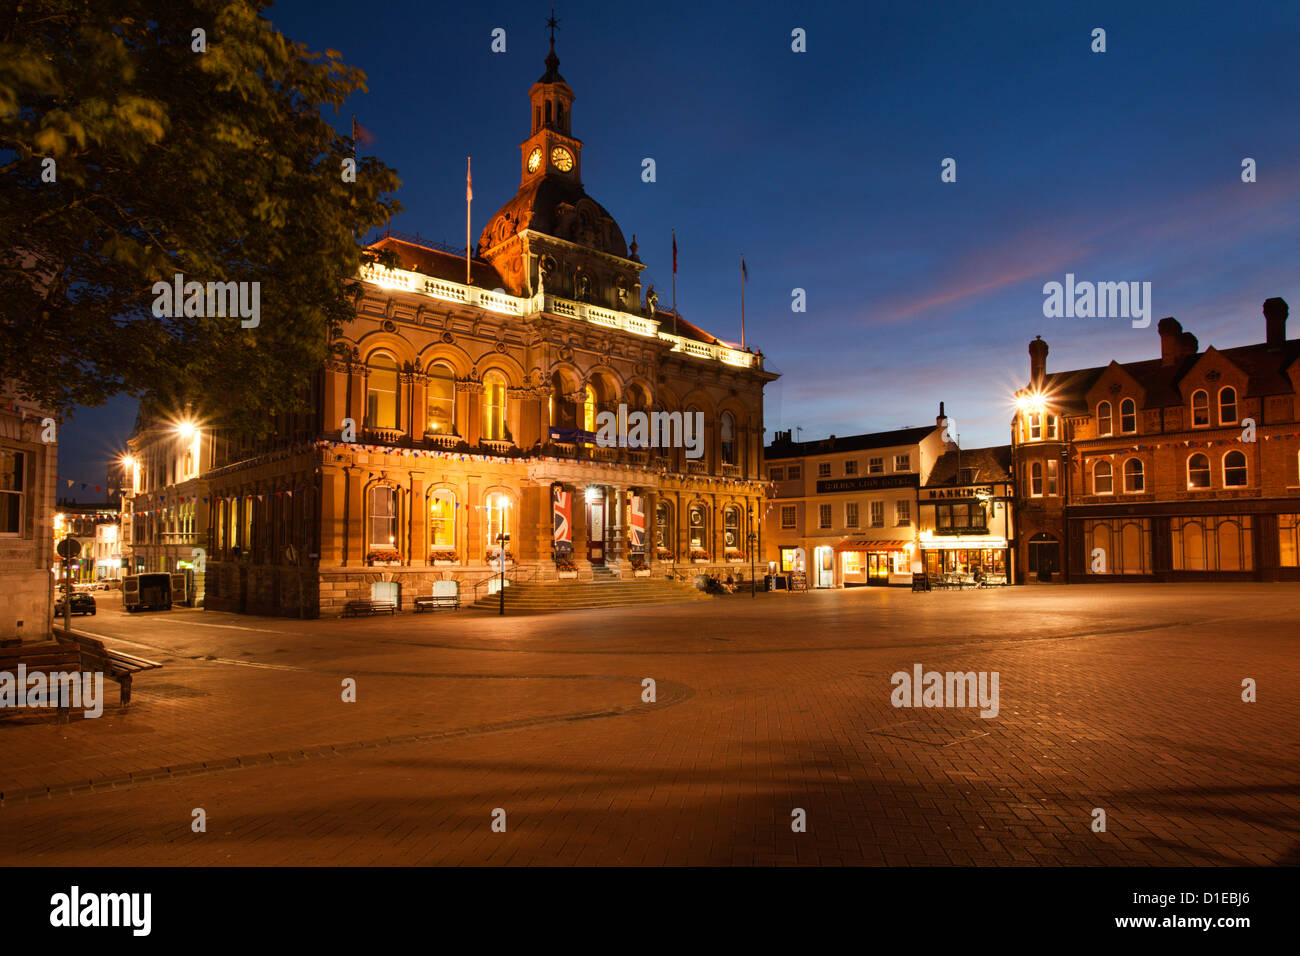 The Town Hall at dusk, Ipswich, Suffolk, England, United Kingdom, Europe - Stock Image